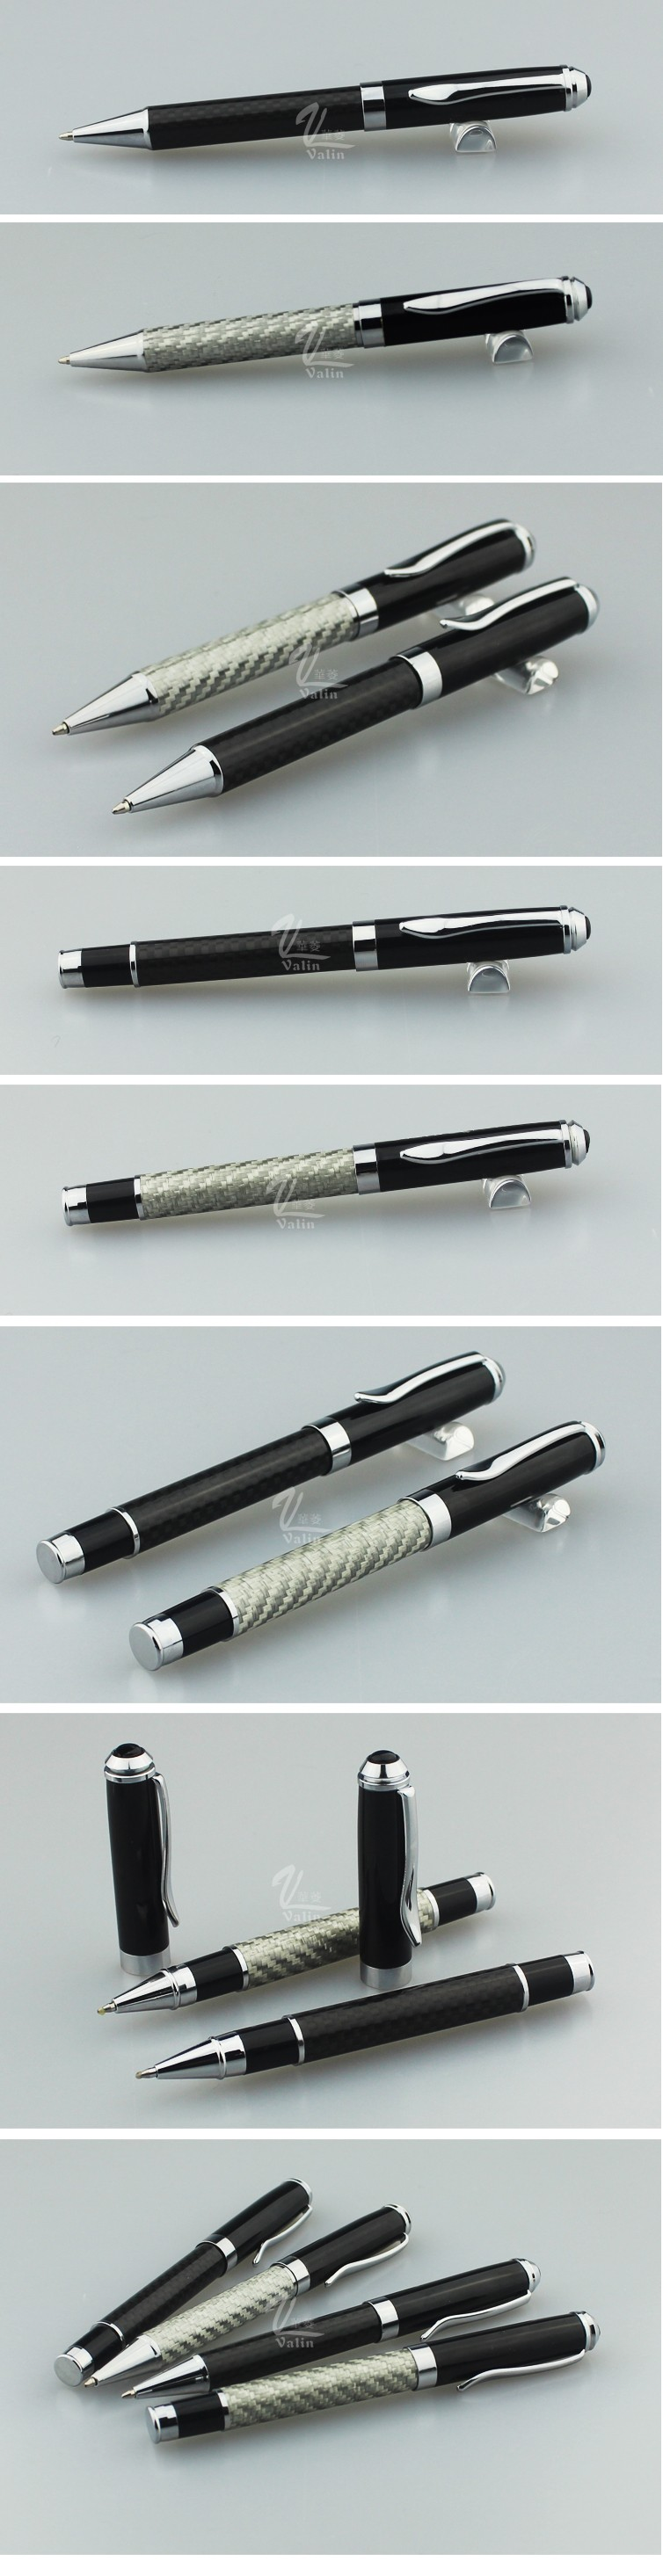 2016 HOT sale carbon fiber pen & executive pen set